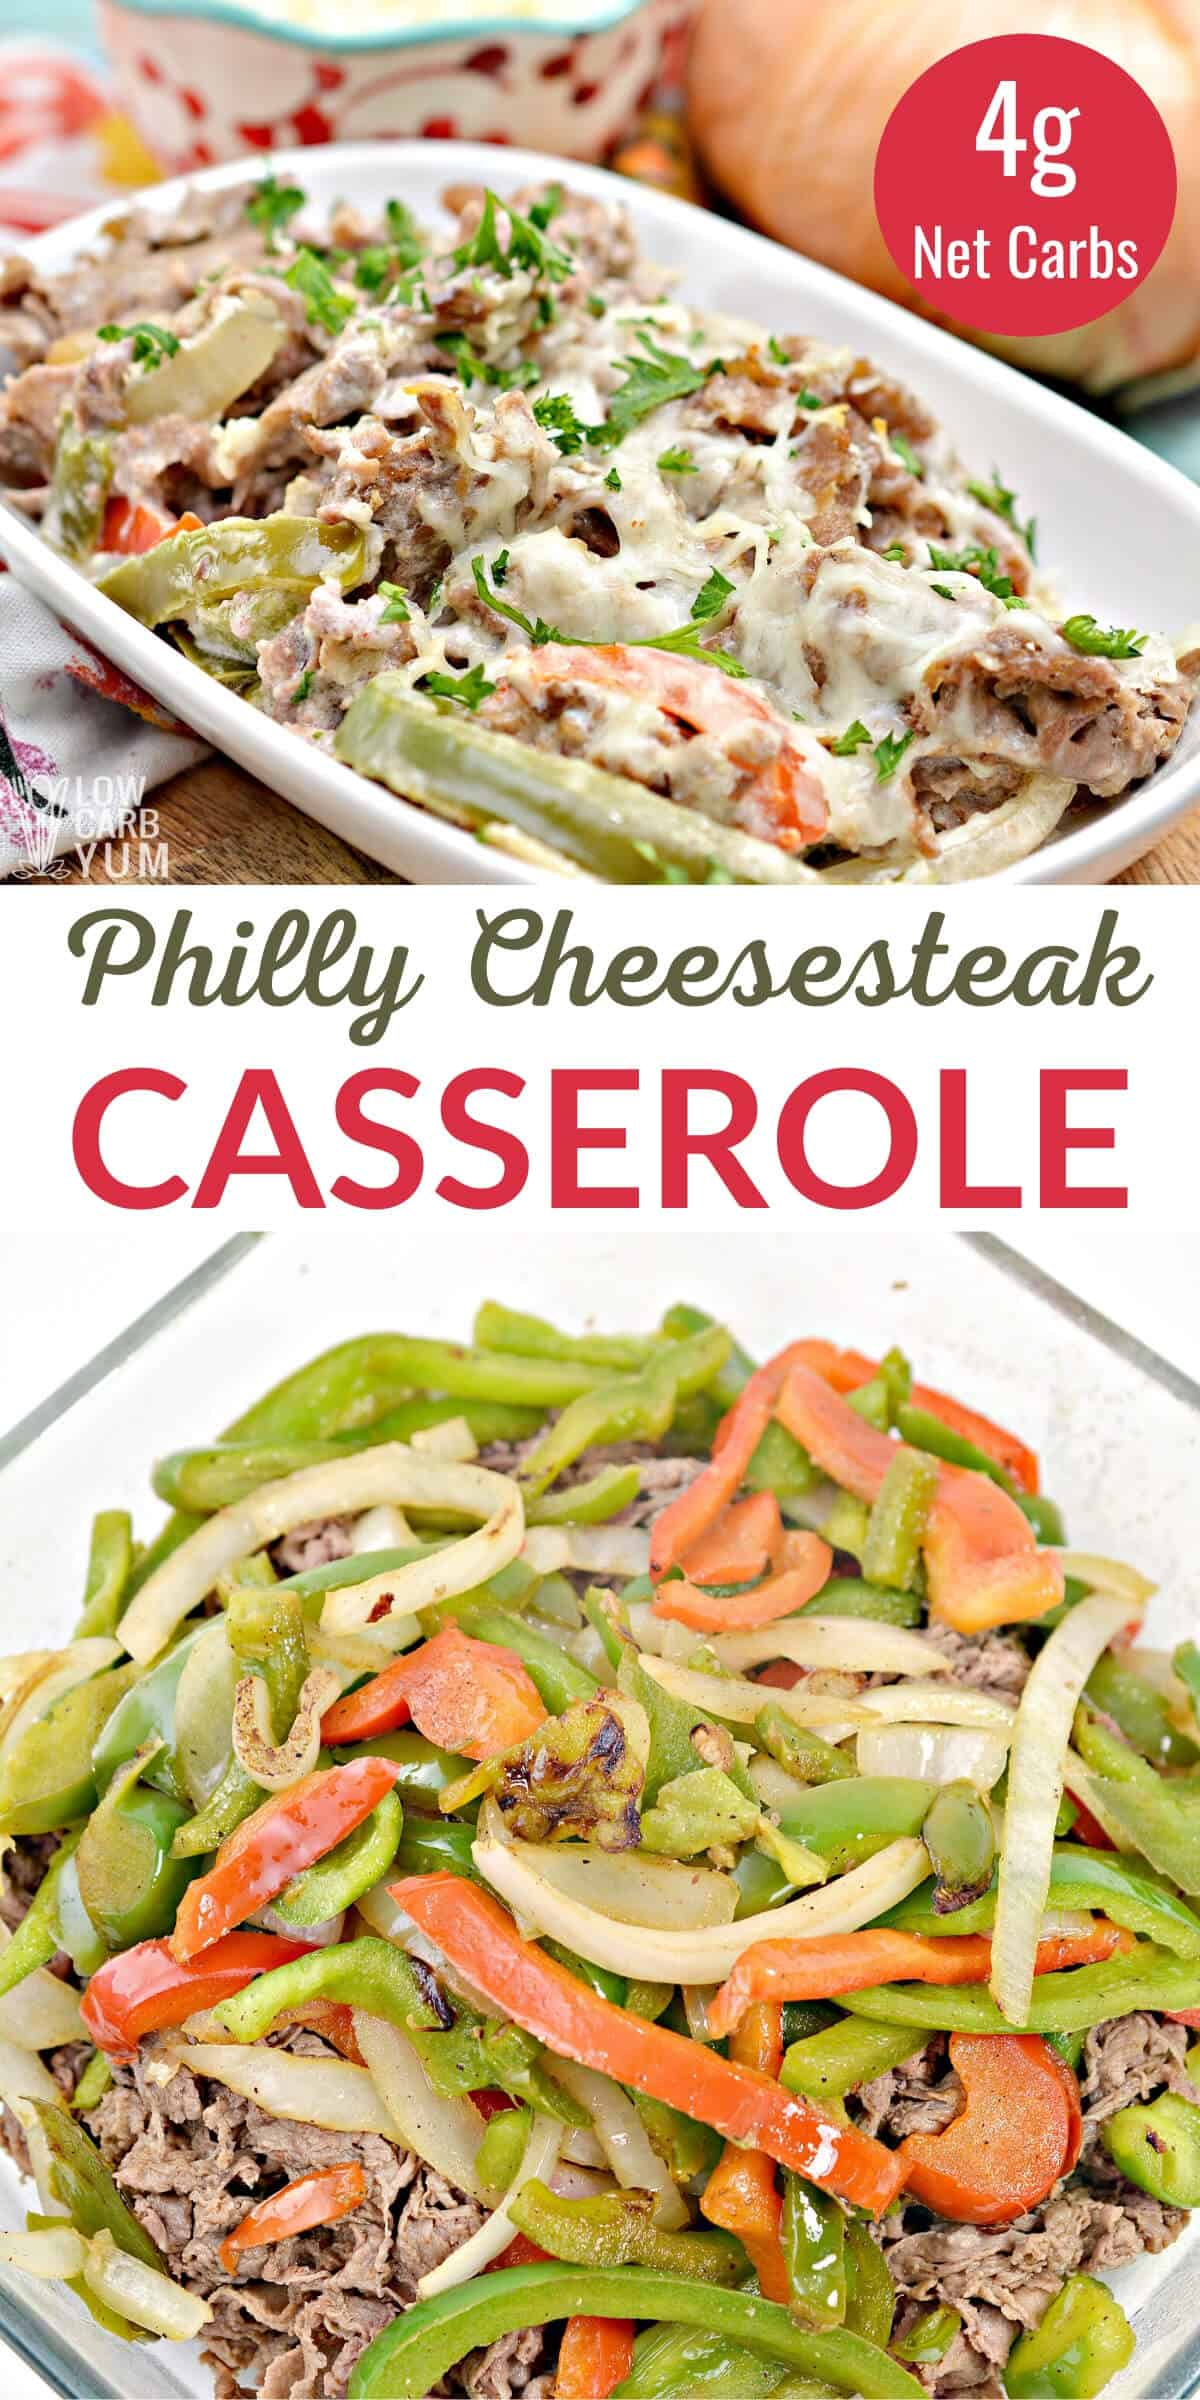 cheesesteak casserole recipe